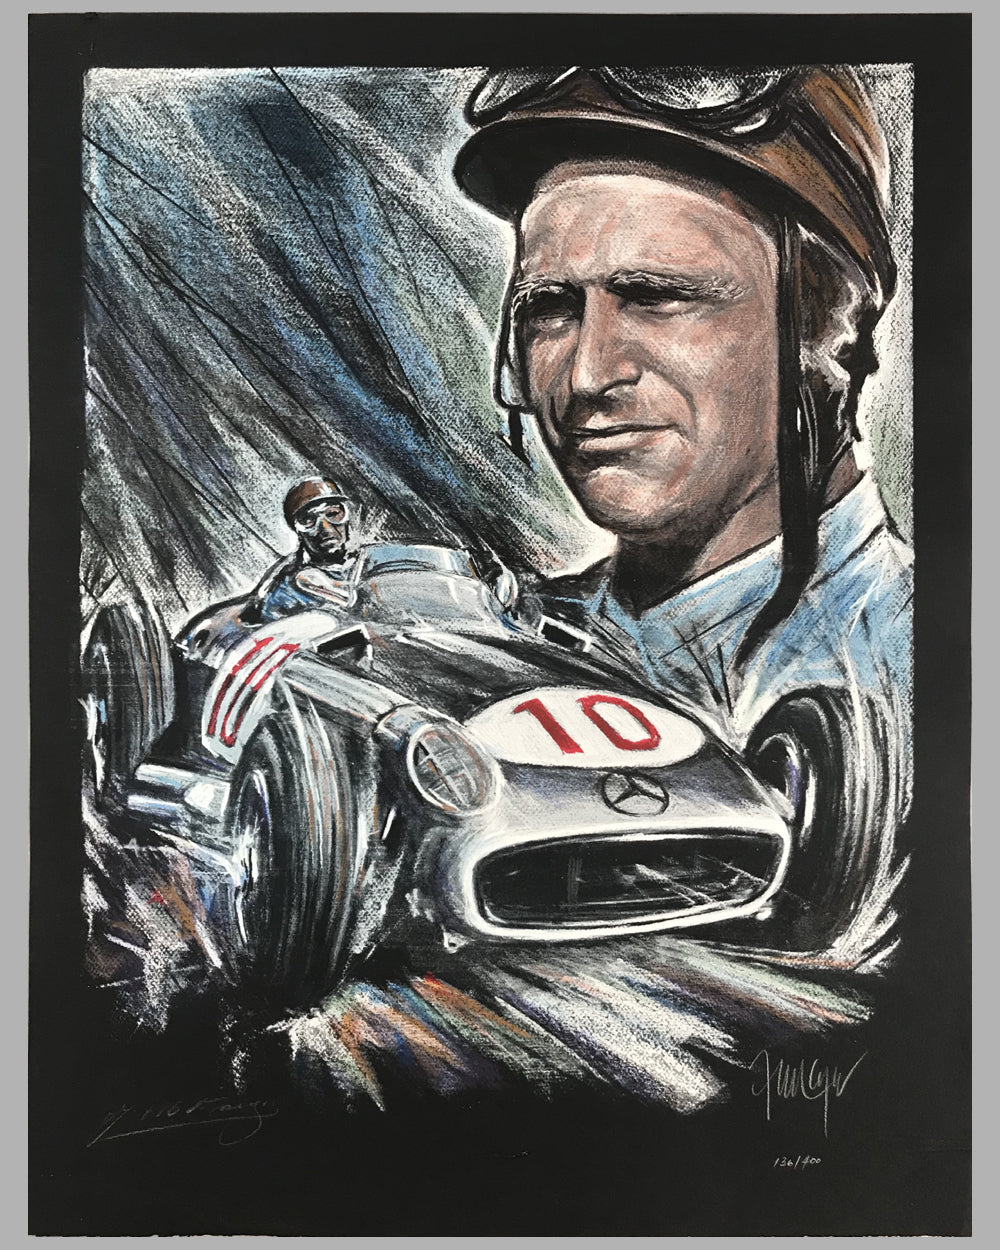 """Fangio in his Mercedes W196"" autographed lithograph by Jorge Ferreyra, Argentina"